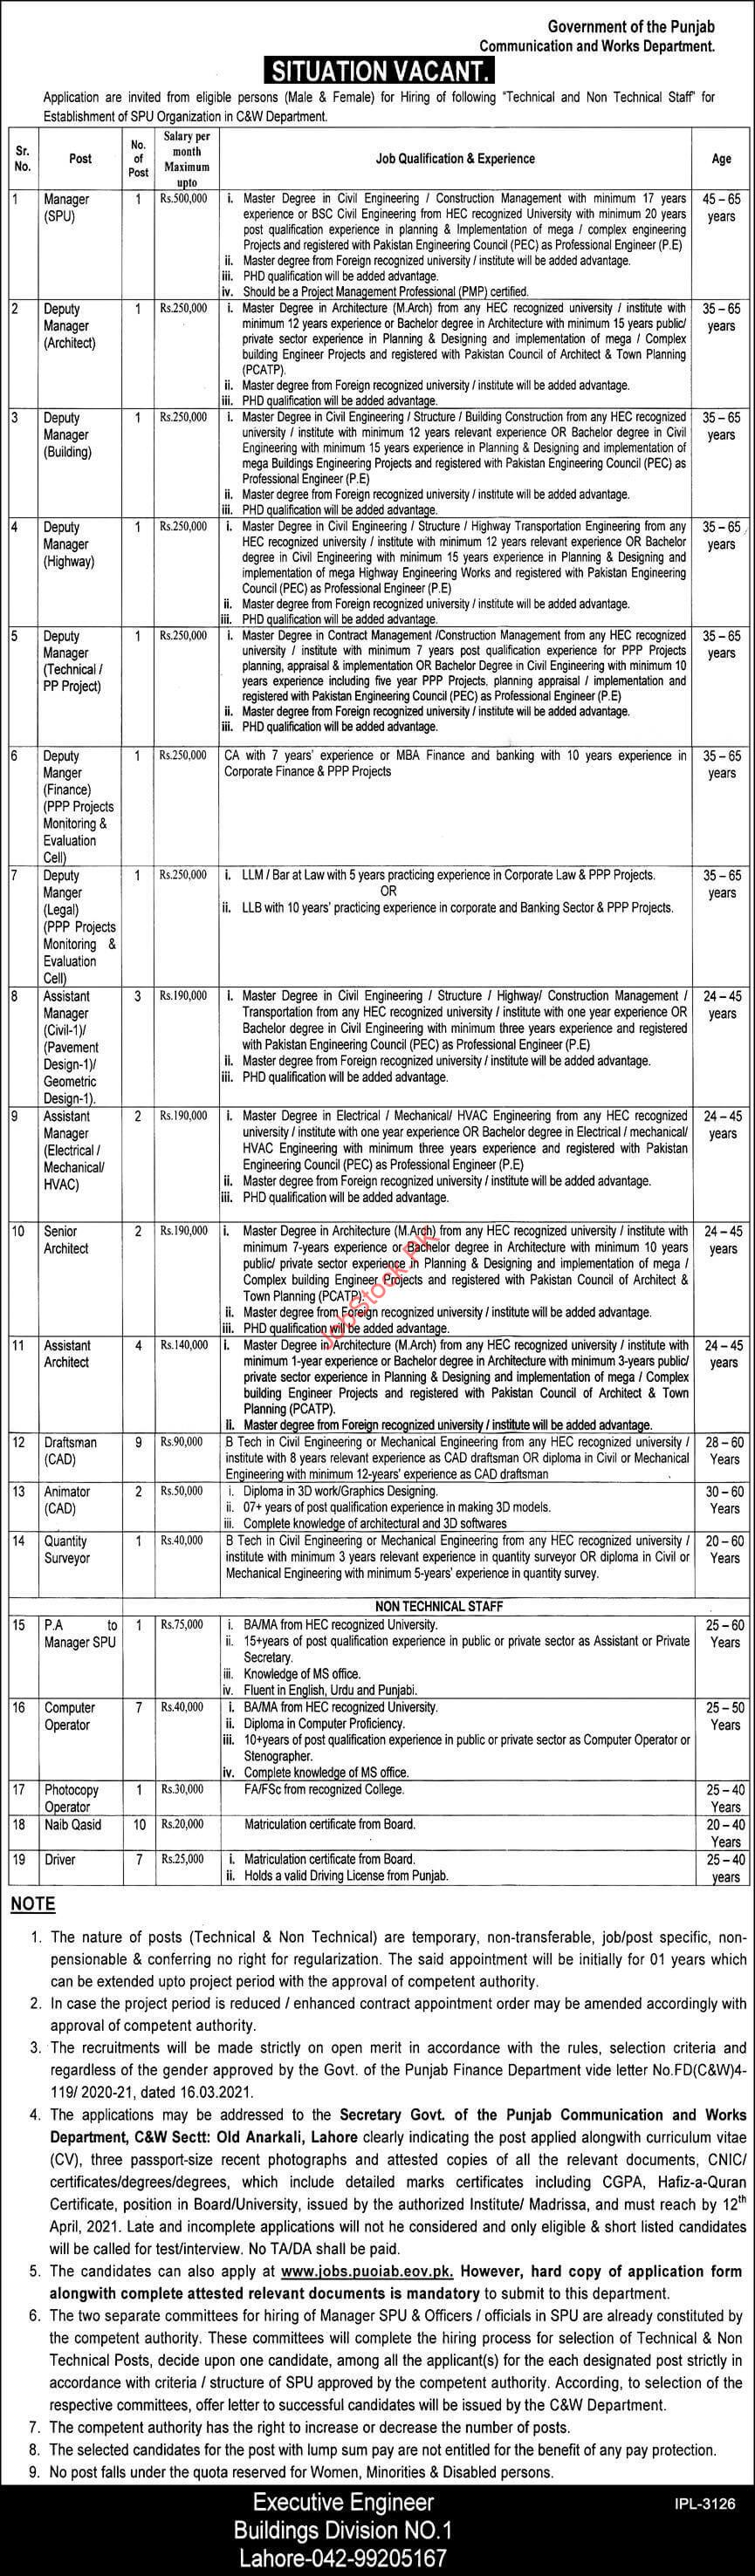 Communication And Works Department Jobs 2021 Latest C&w Department Vacancies